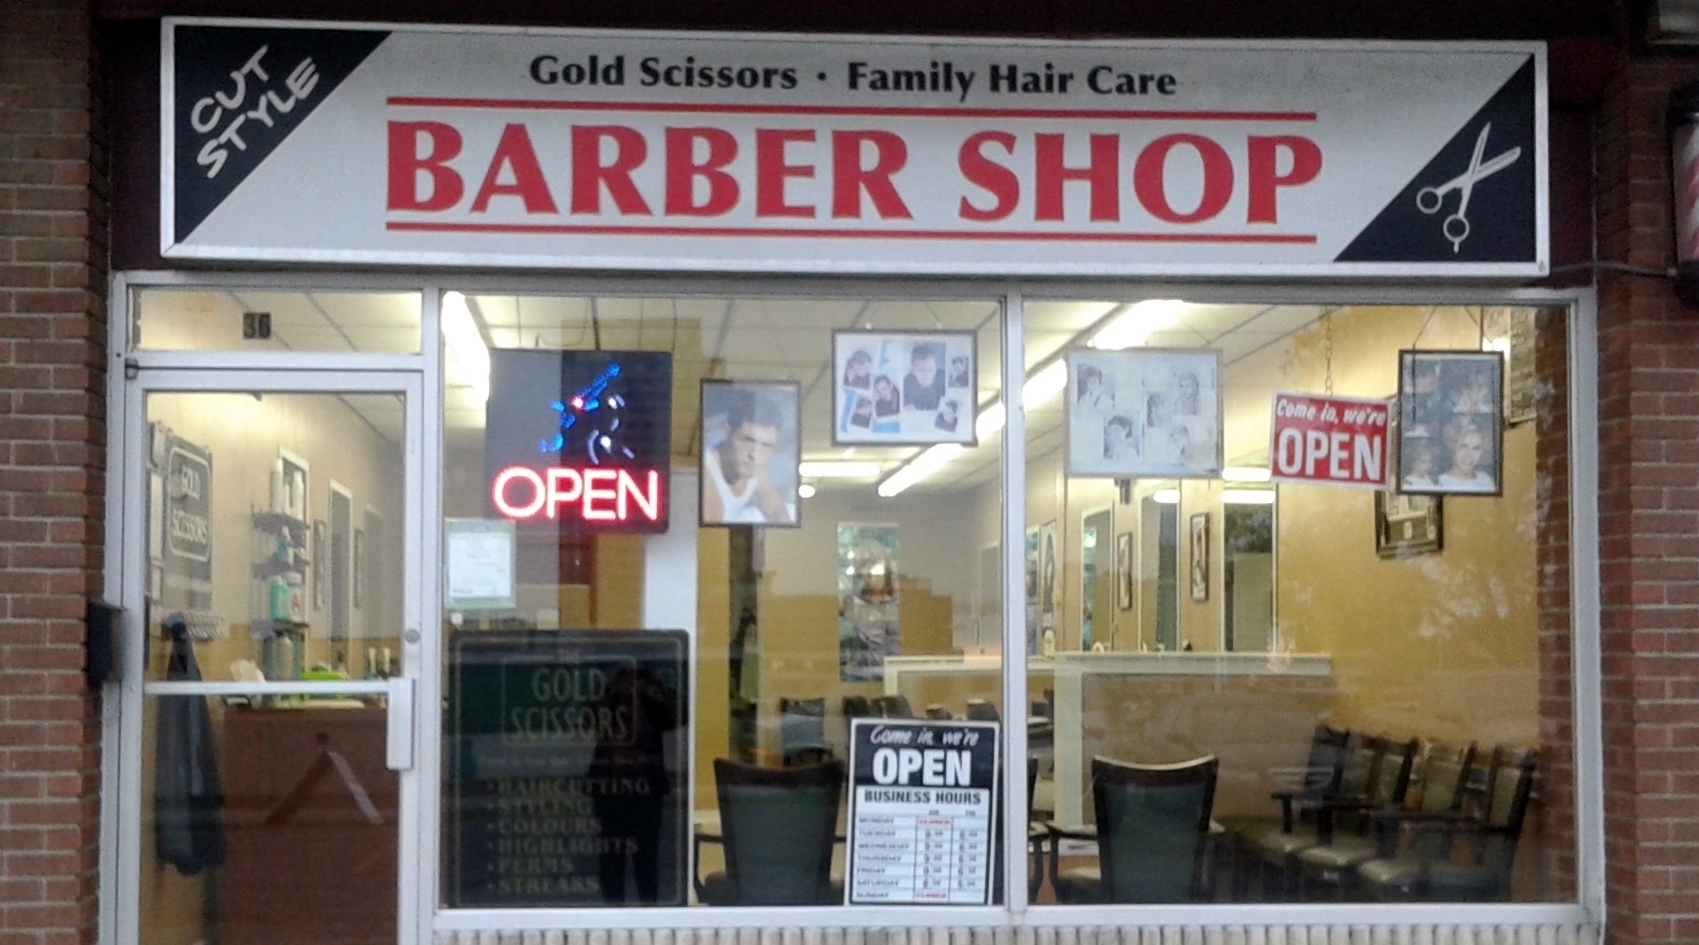 Gold Scissors Barber Shop and Family Hair Care - Opening ...